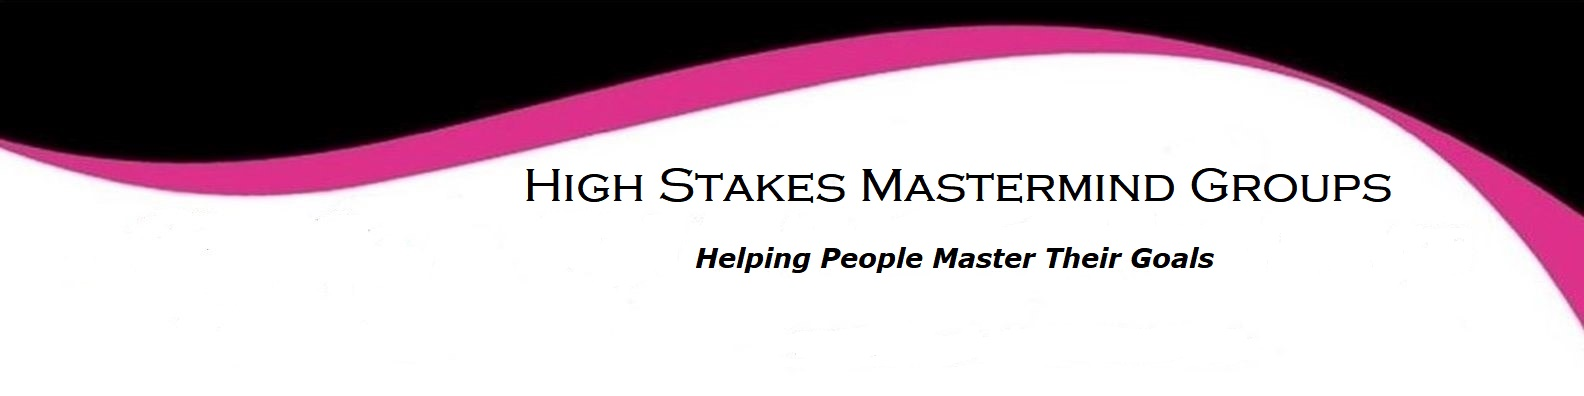 High Stakes Mastermind Groups